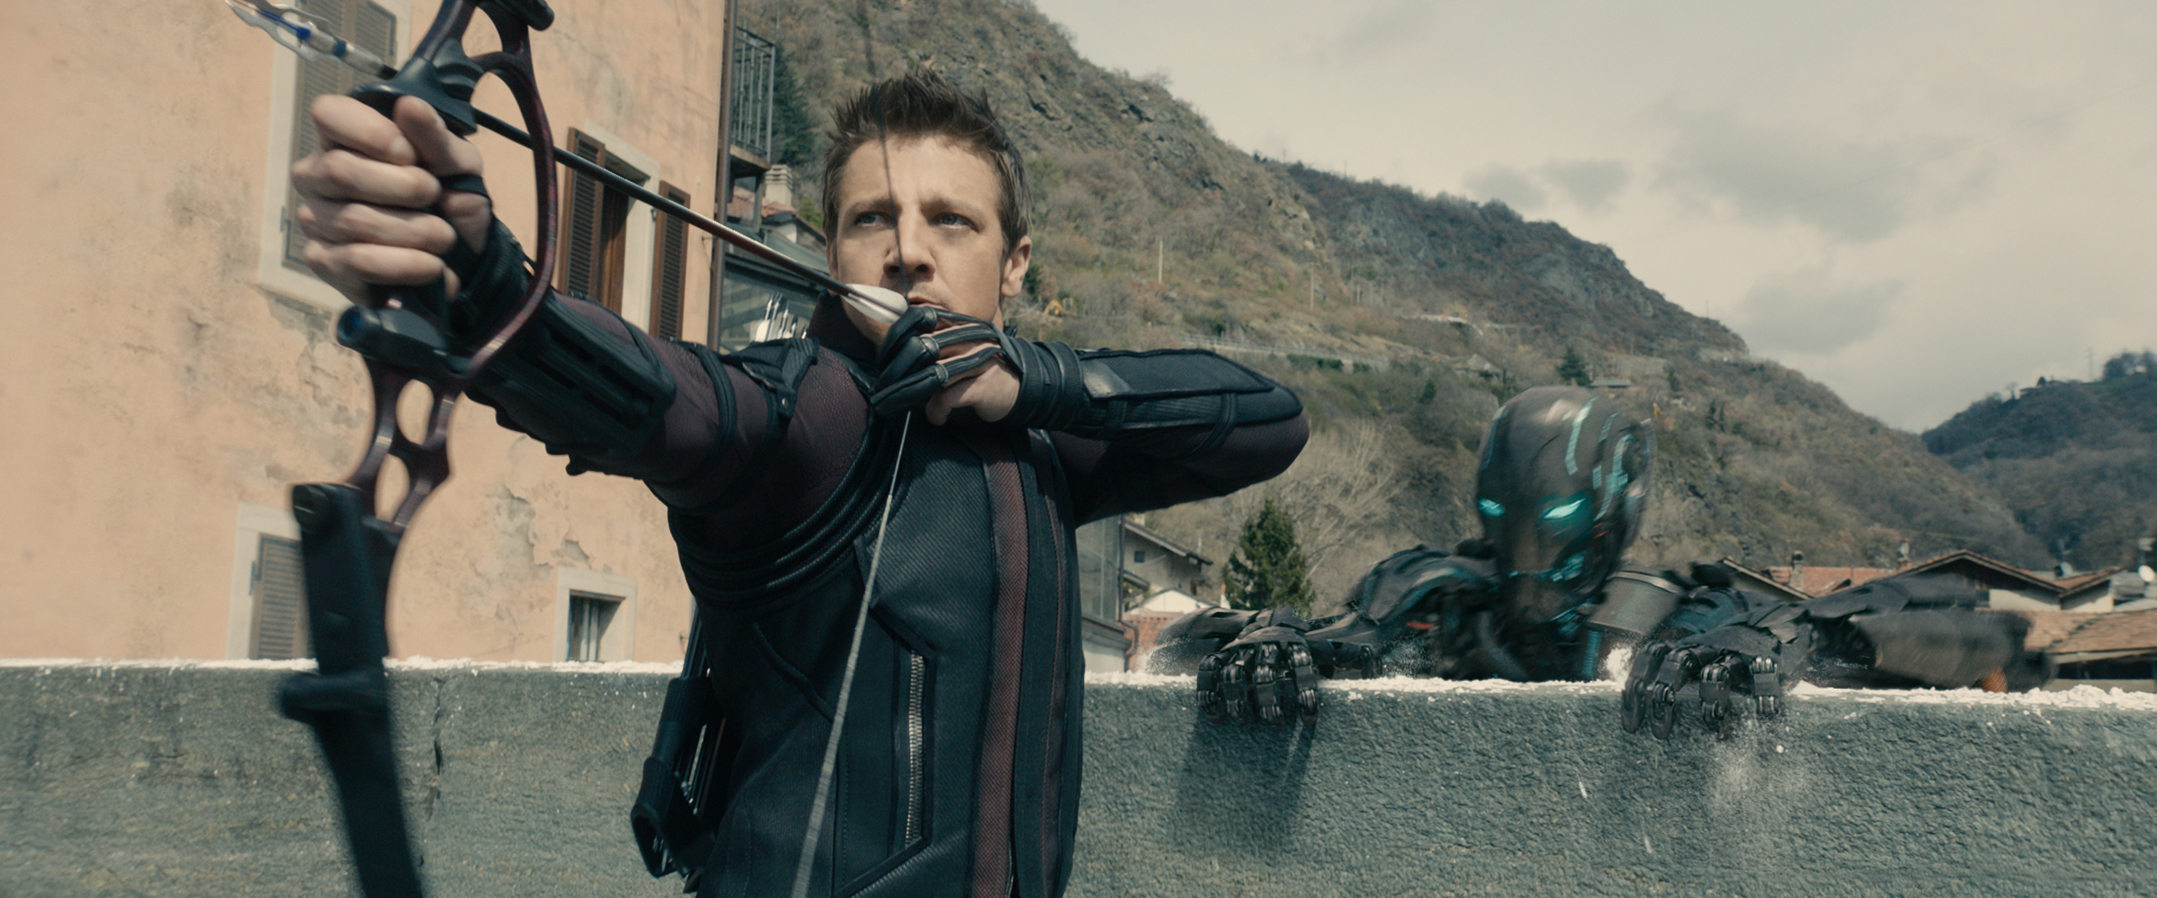 After Age of Ultron, What's Next for the Avengers